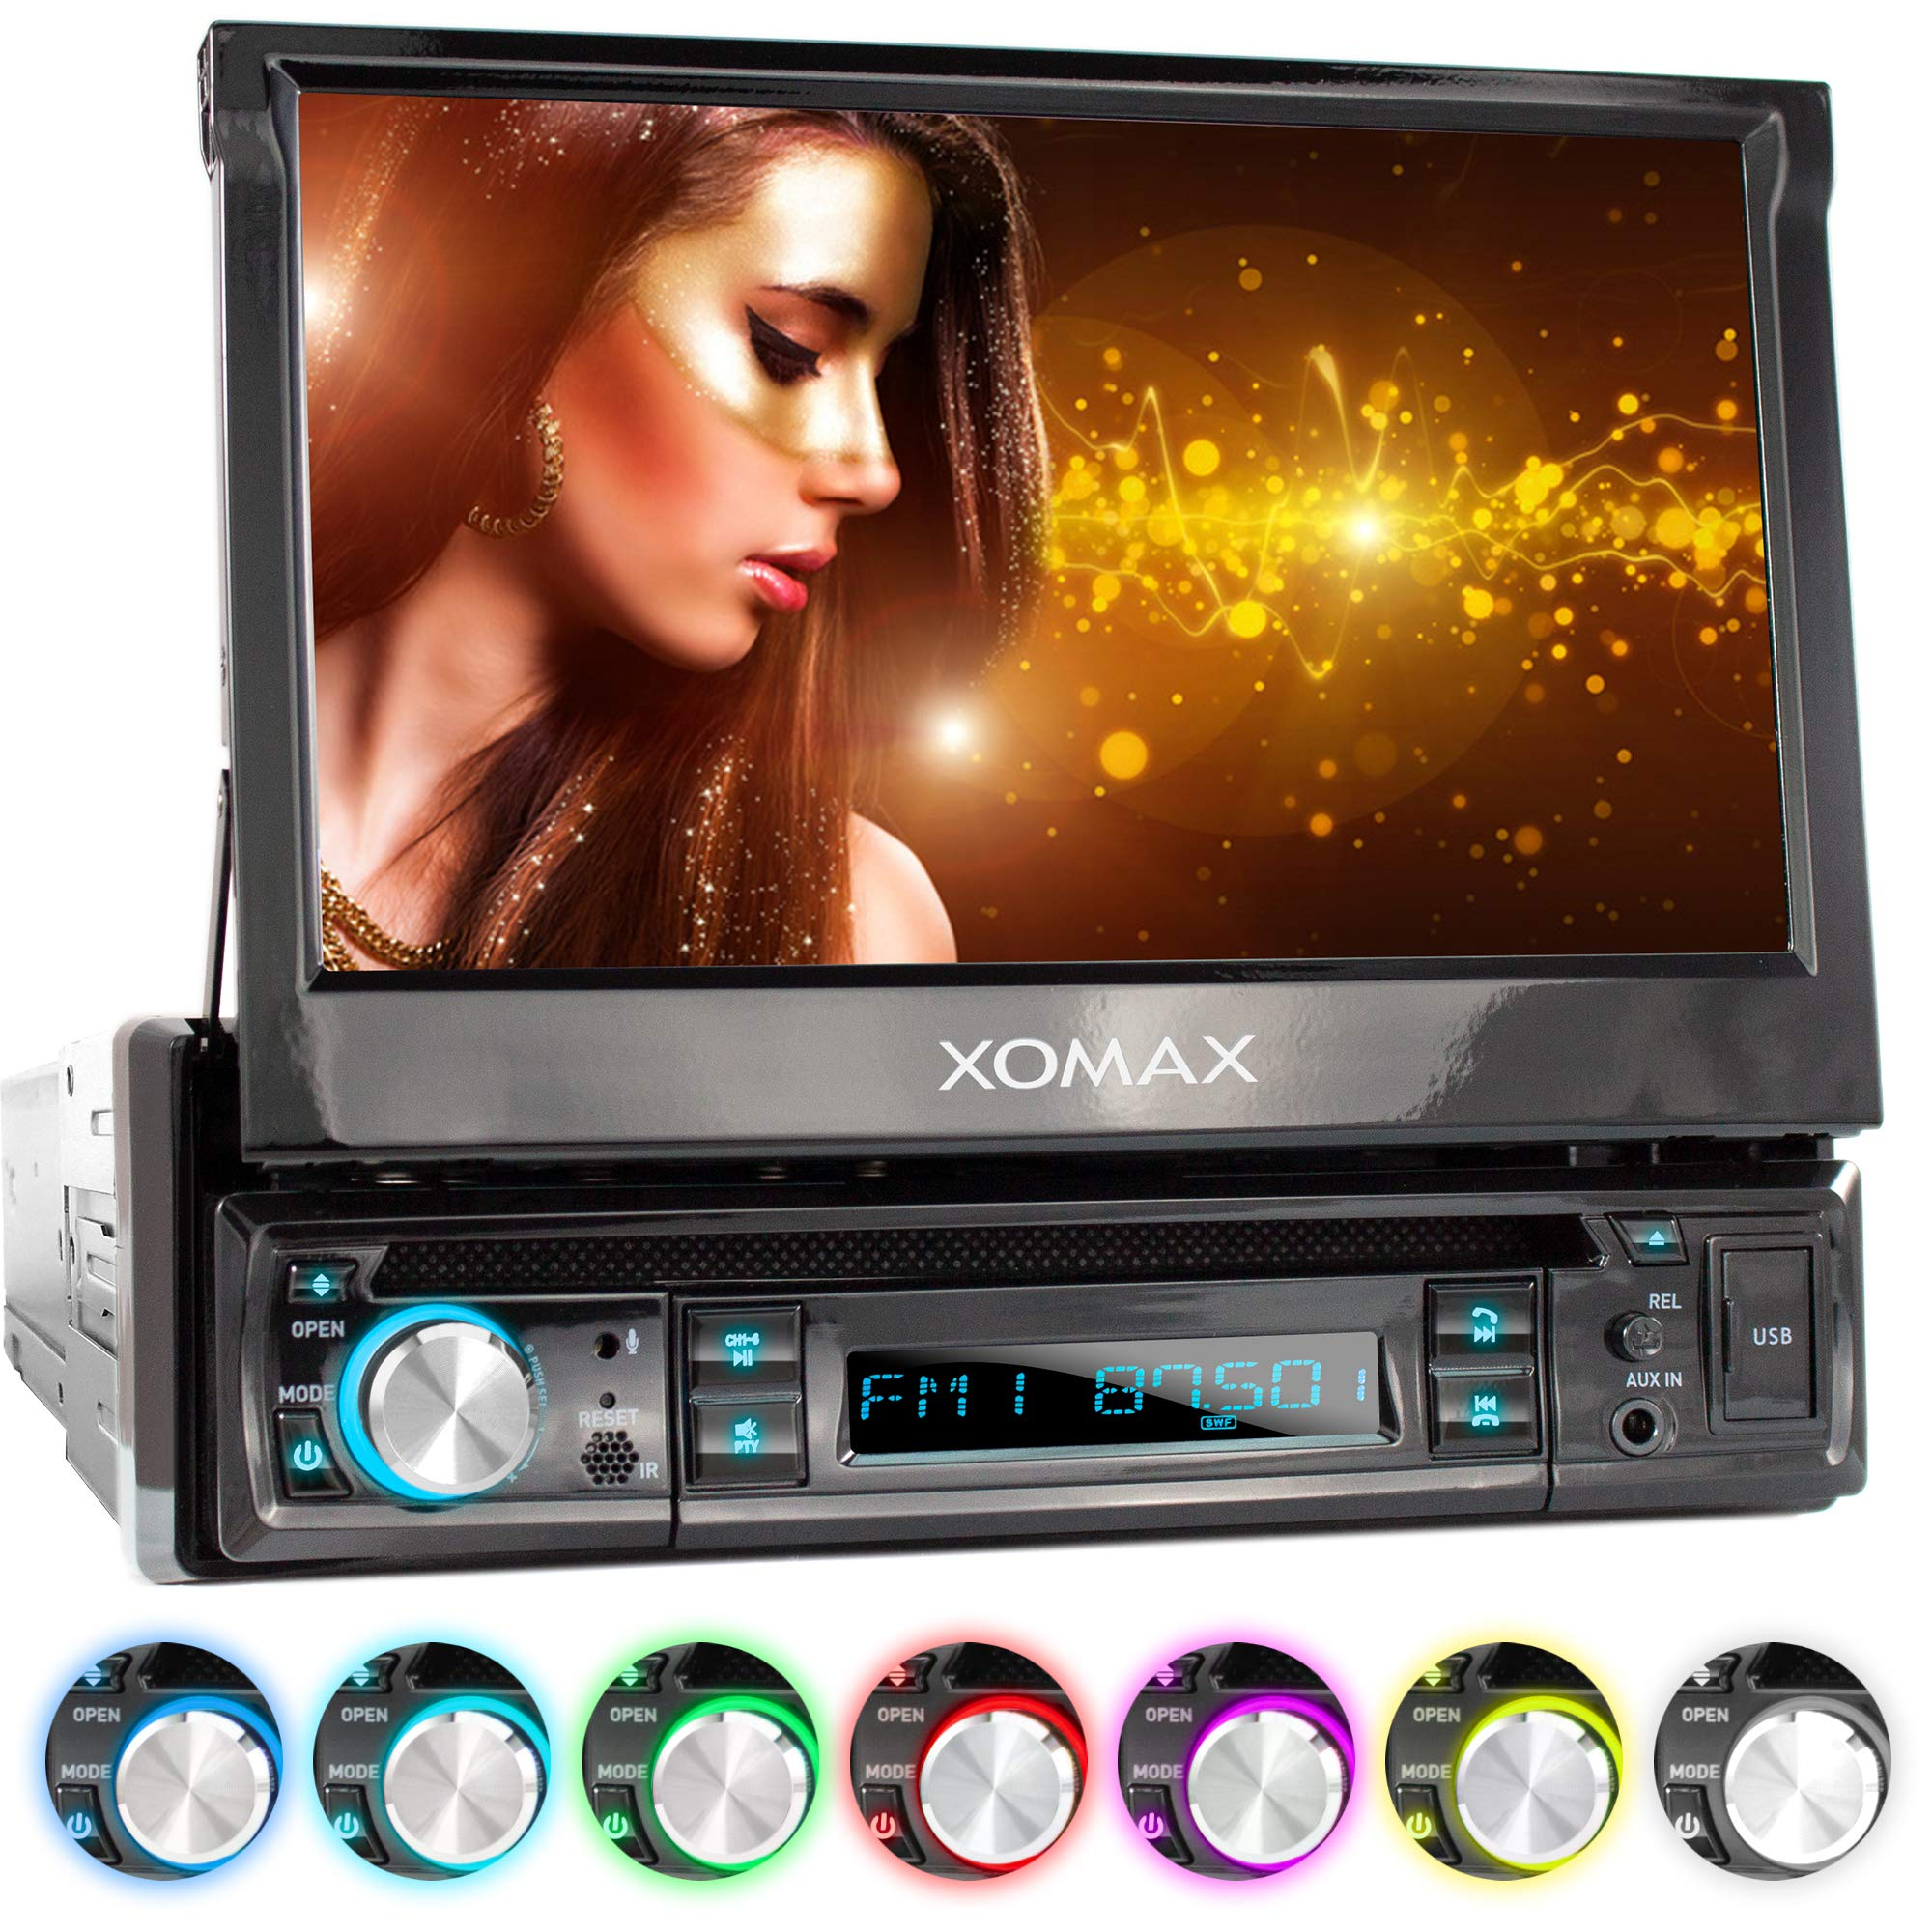 XOMAX XM-DTSB931 Car Stereo with 7